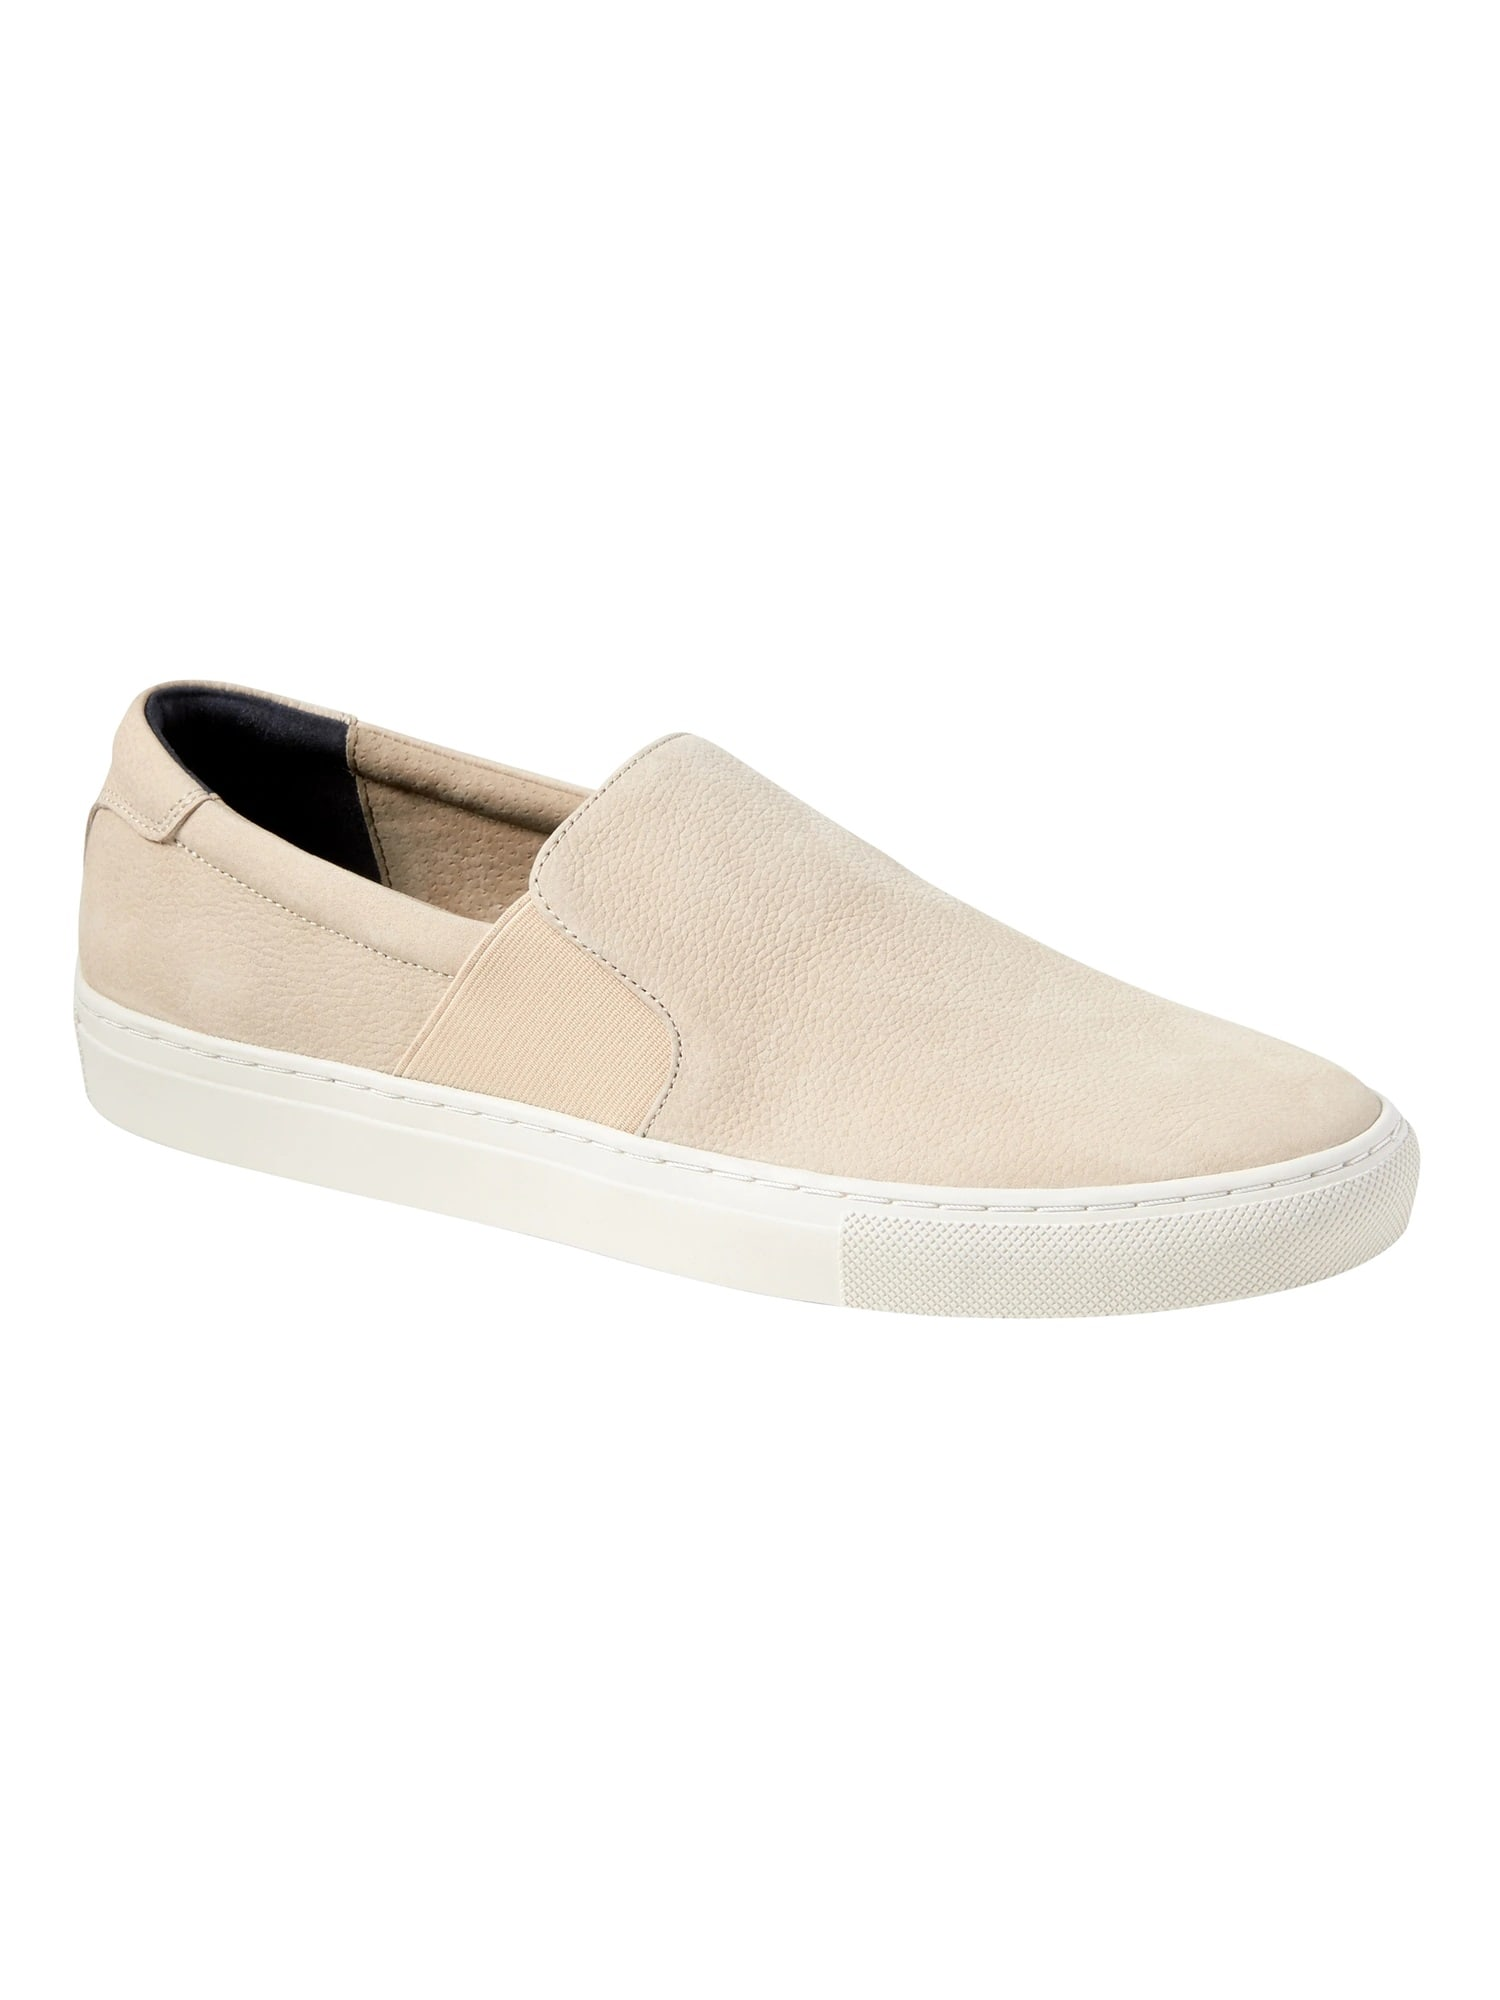 Tylan Leather Slip-On Sneaker